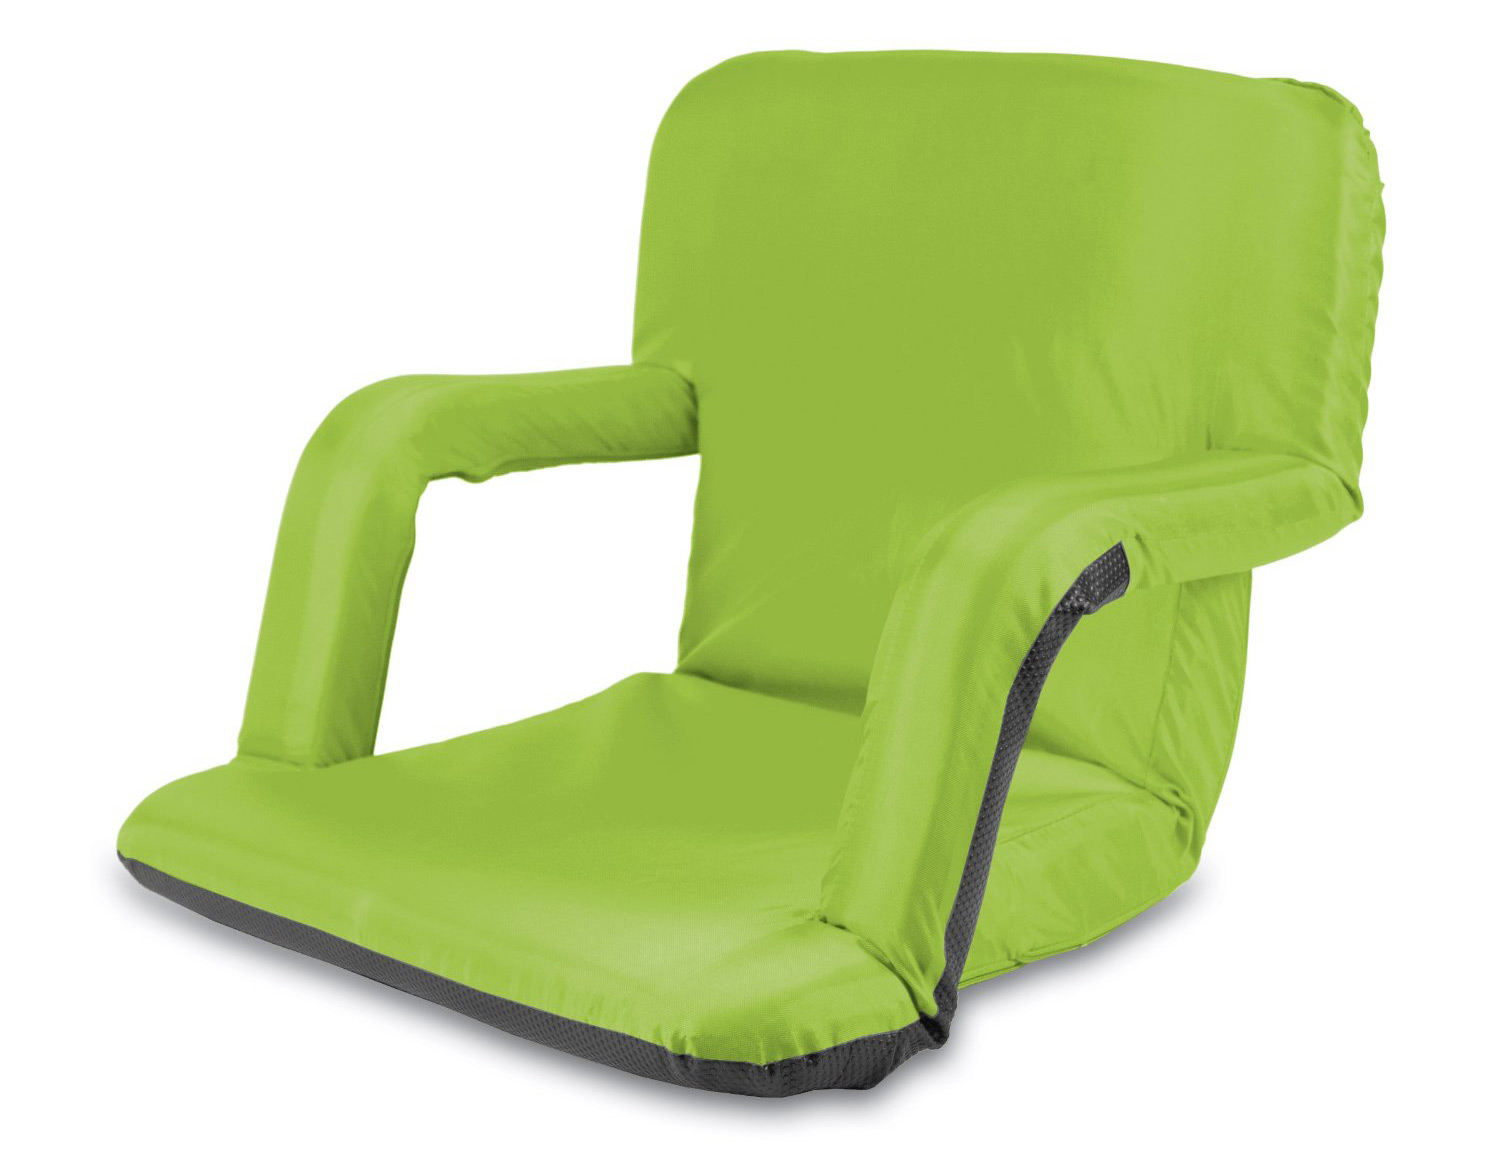 Picnic Time Portable Ventura Reclining Seat | Sheknows.com